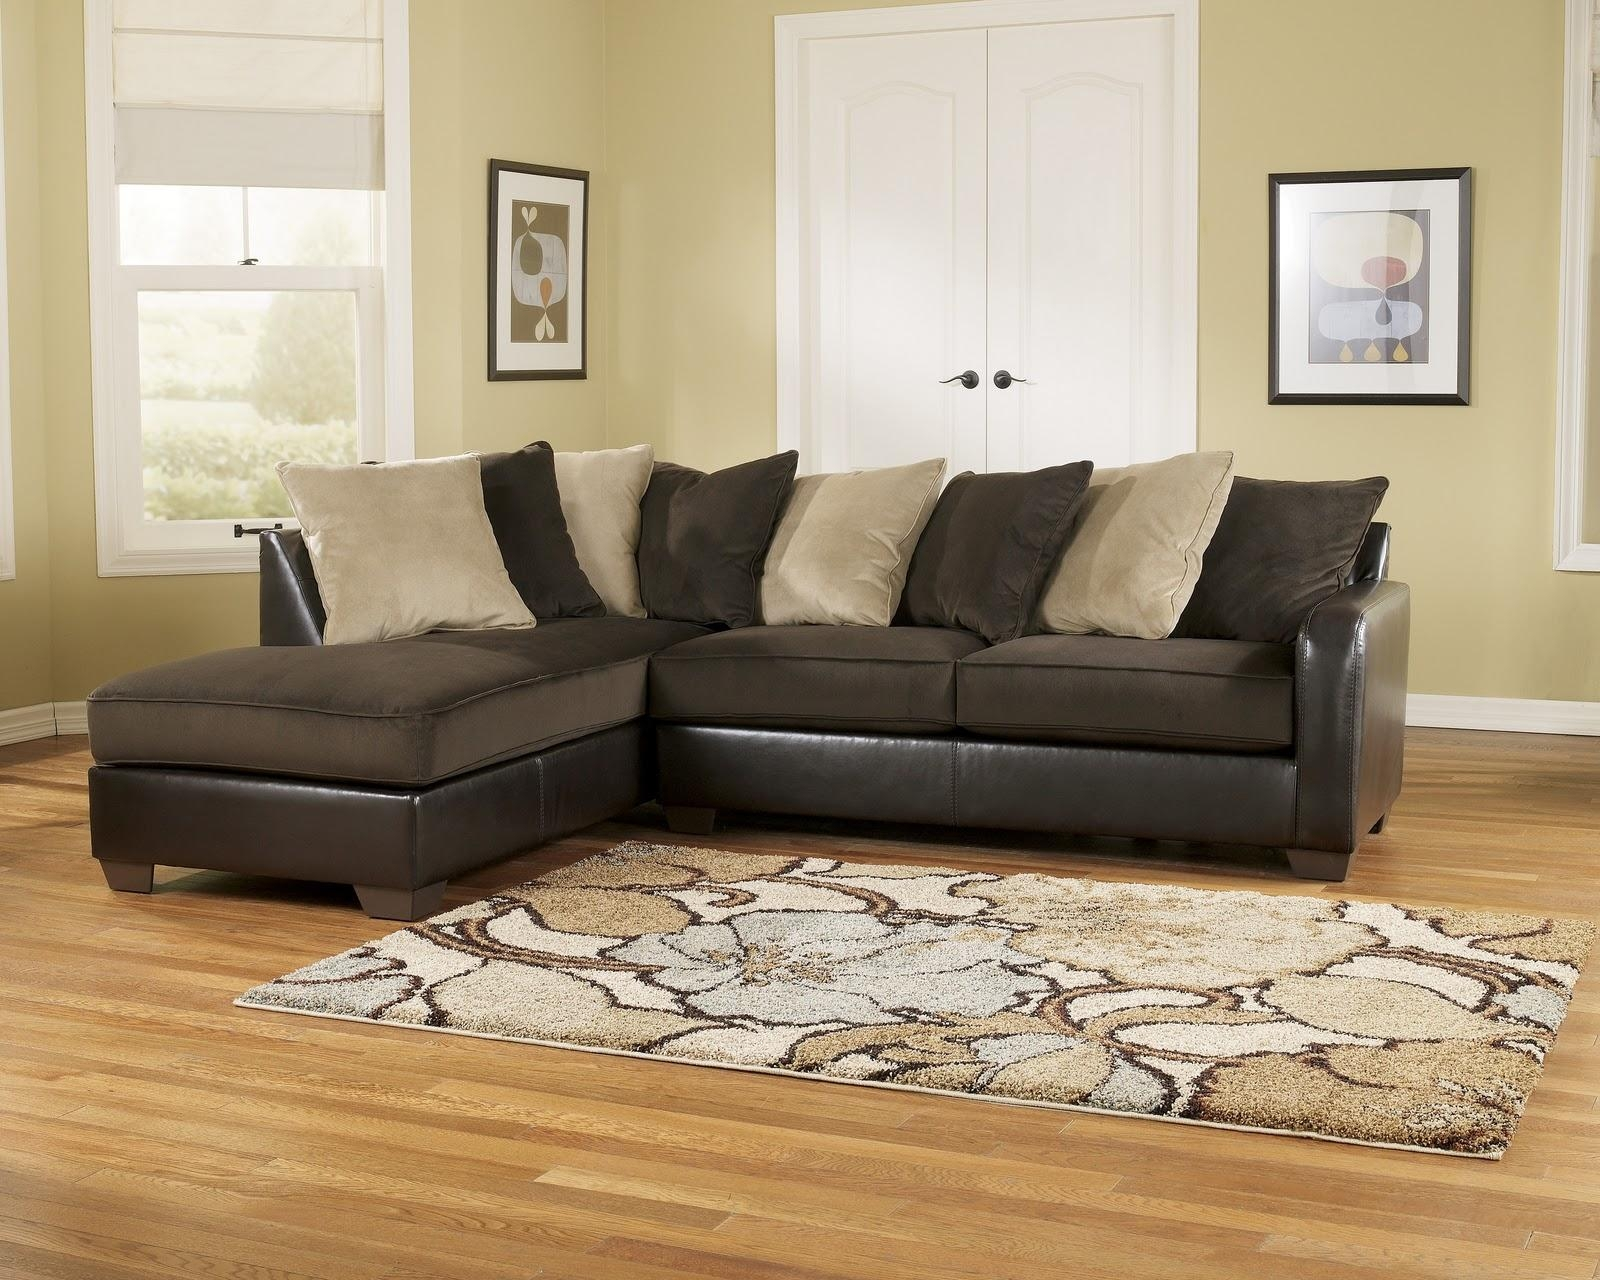 Cheap Couches Under 300